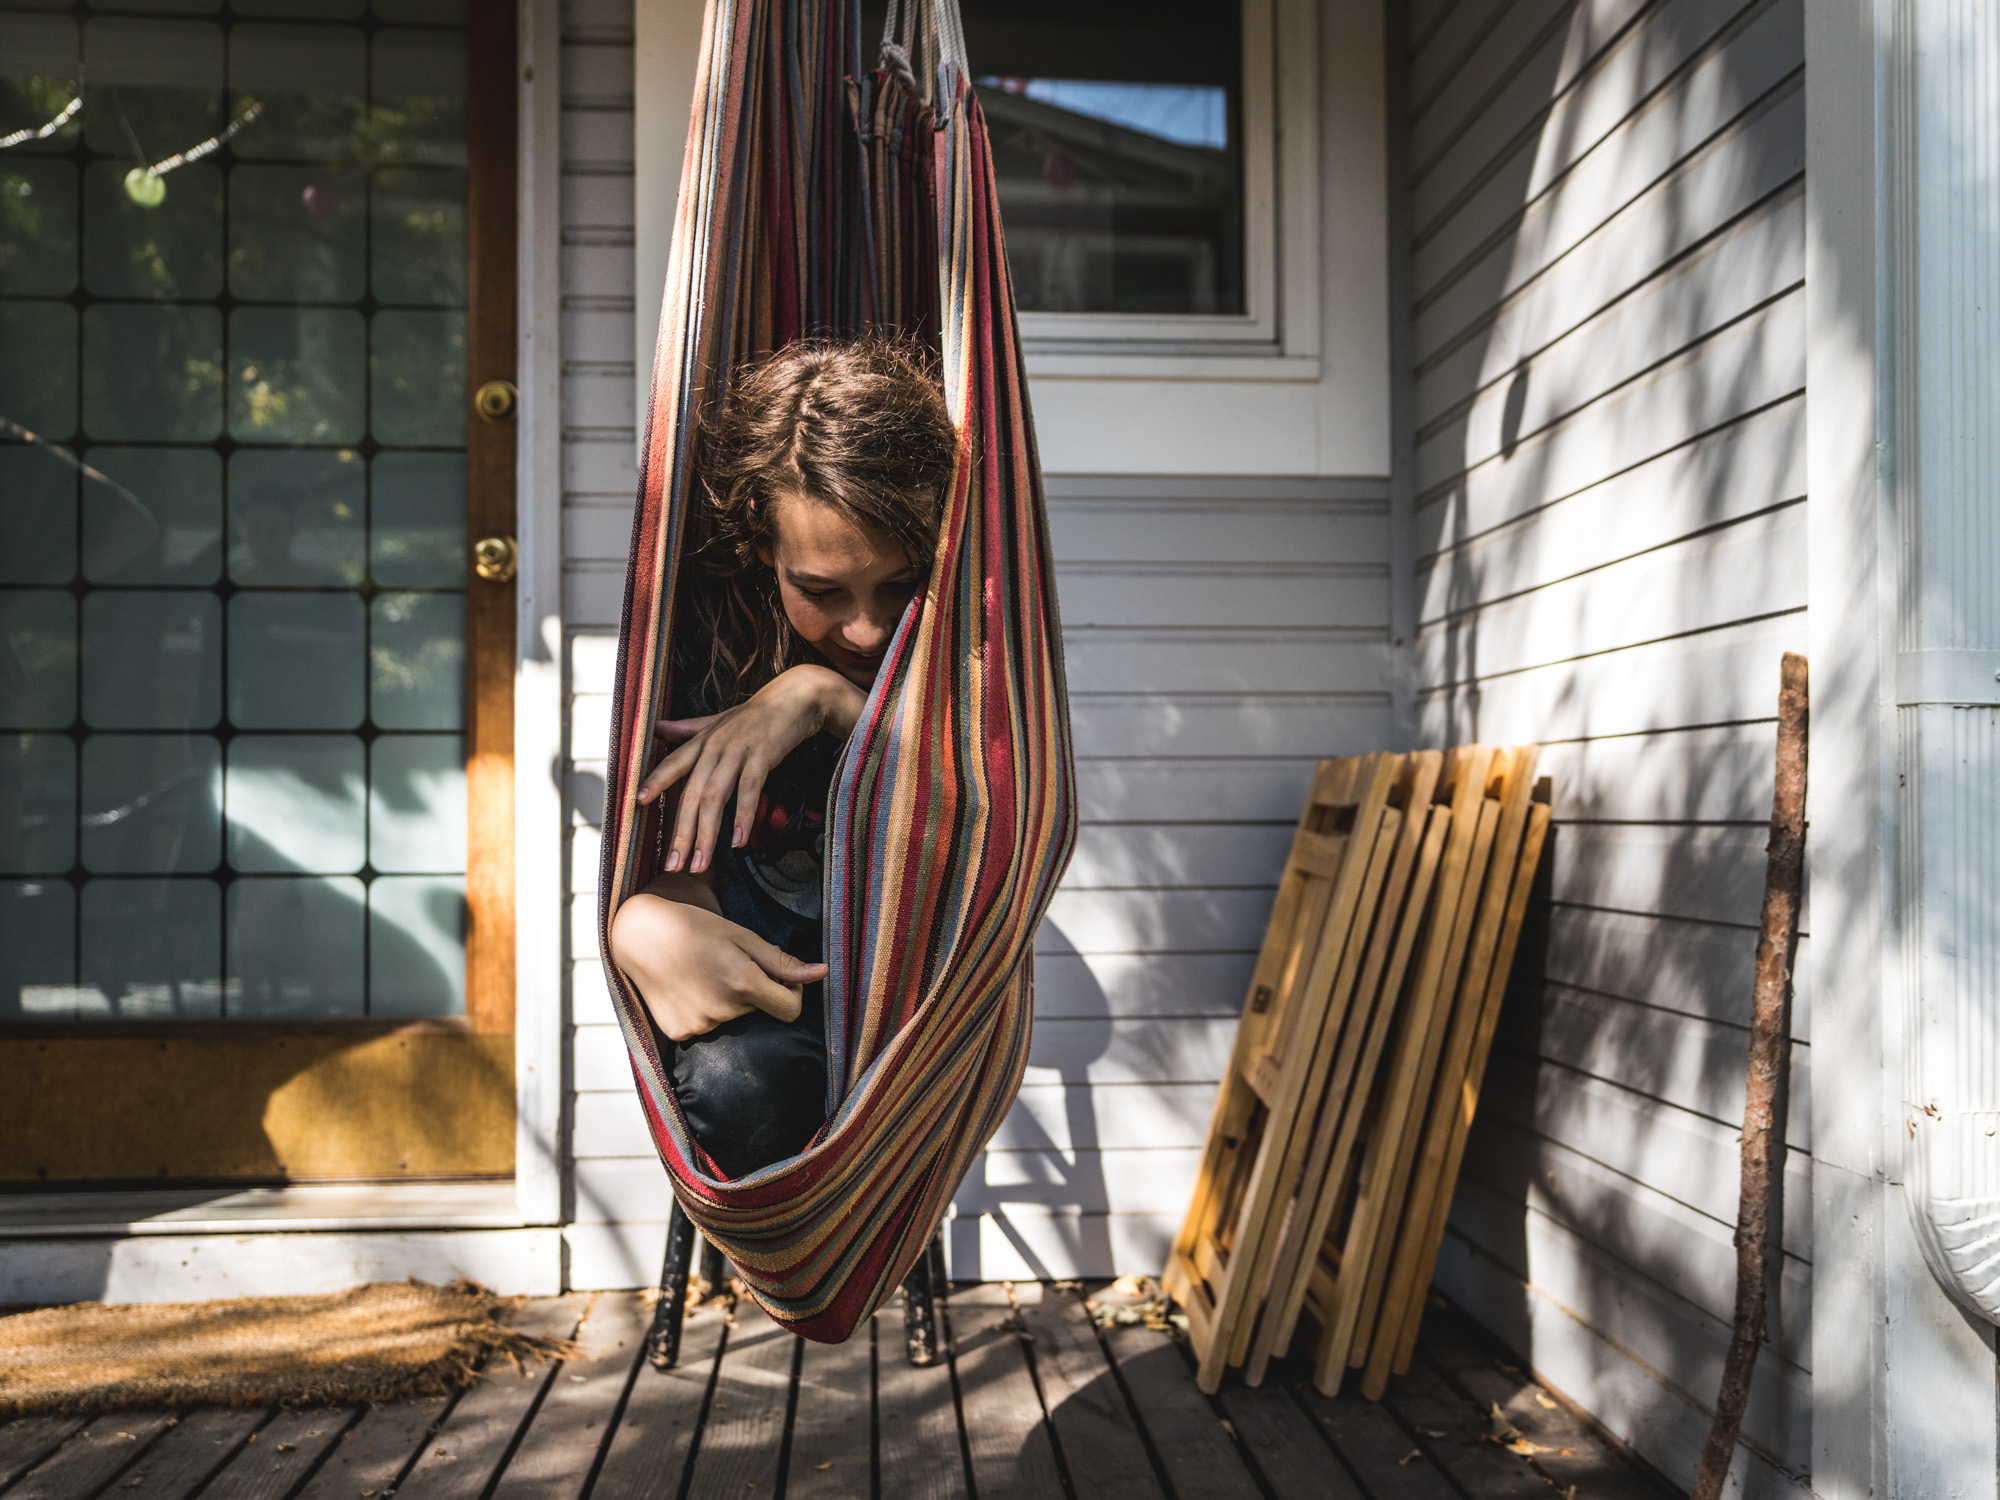 Young boy hangs in a porch swing